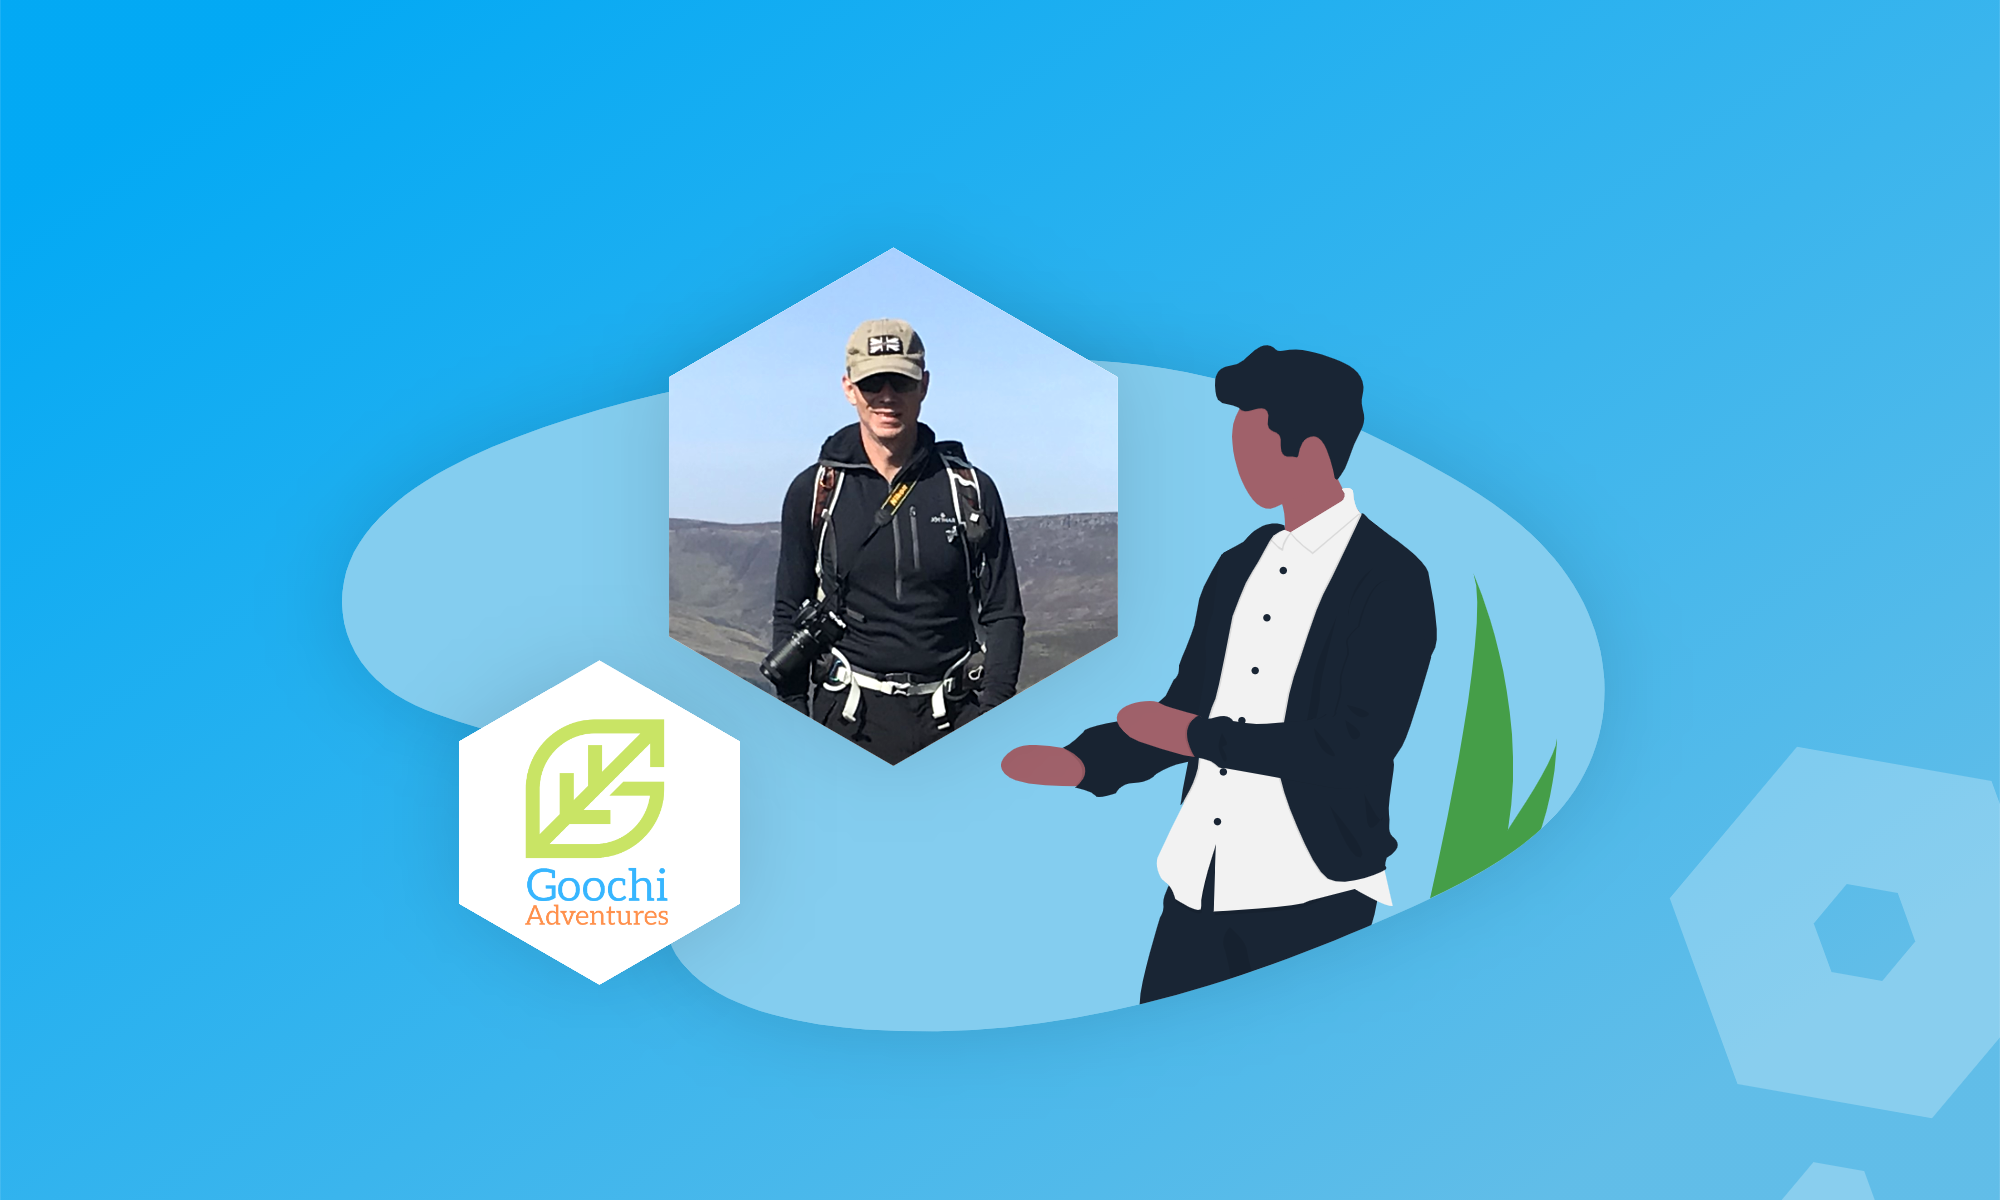 Goochi Adventures - Business of the Month - Andy Gooch